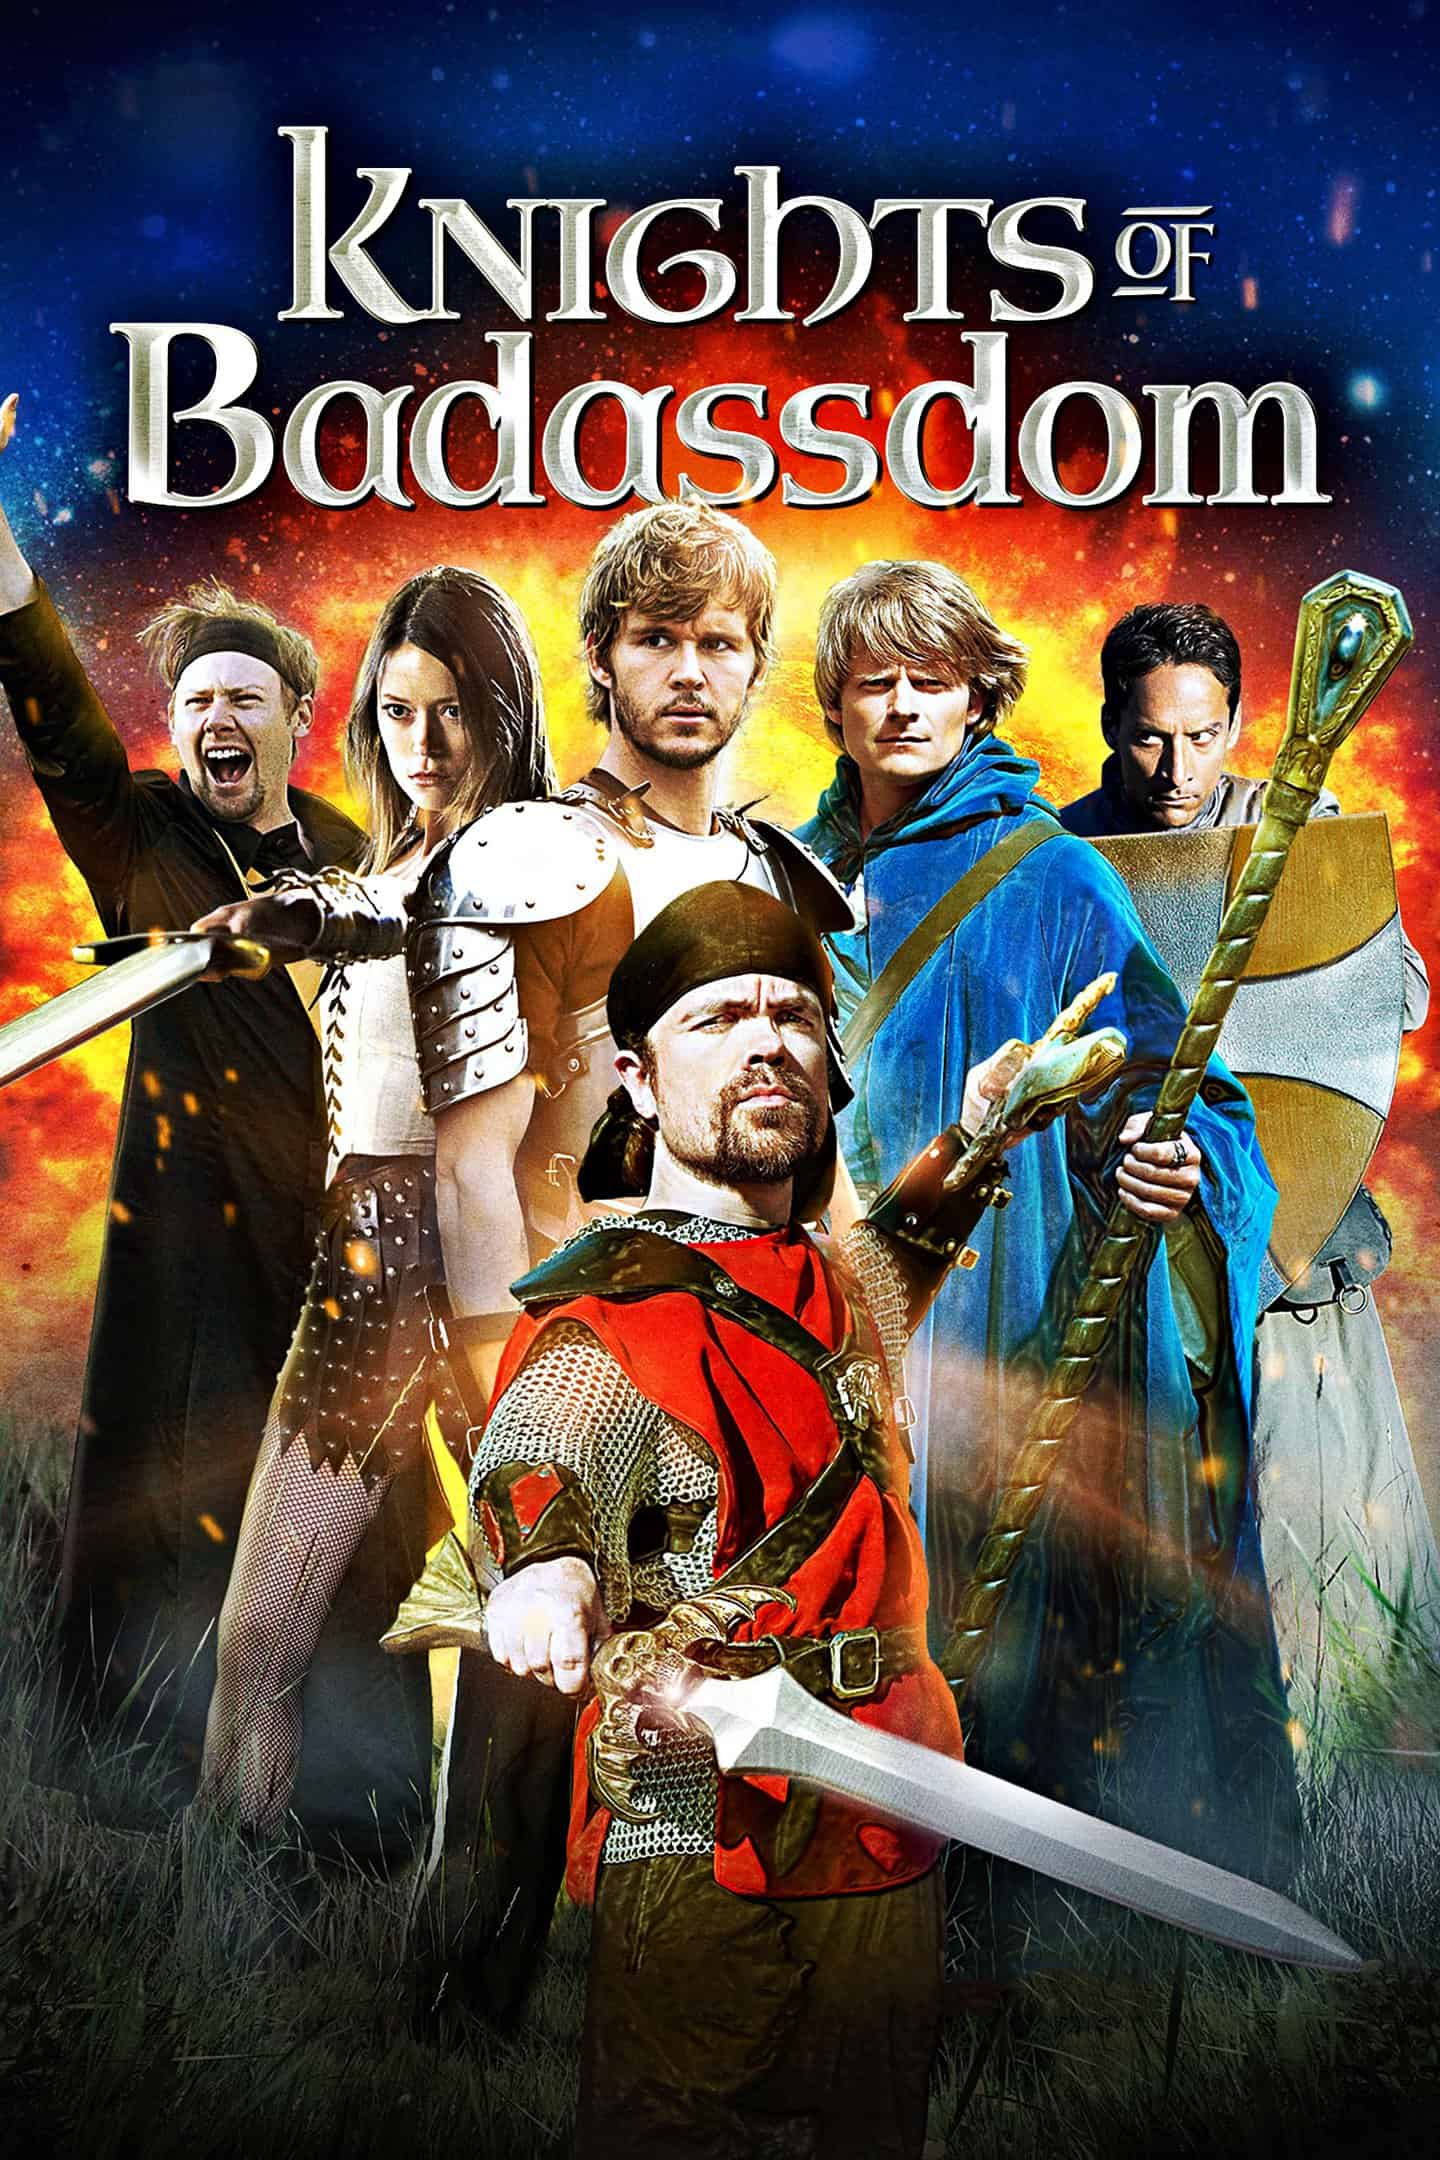 Knights of Badassdom, 2013